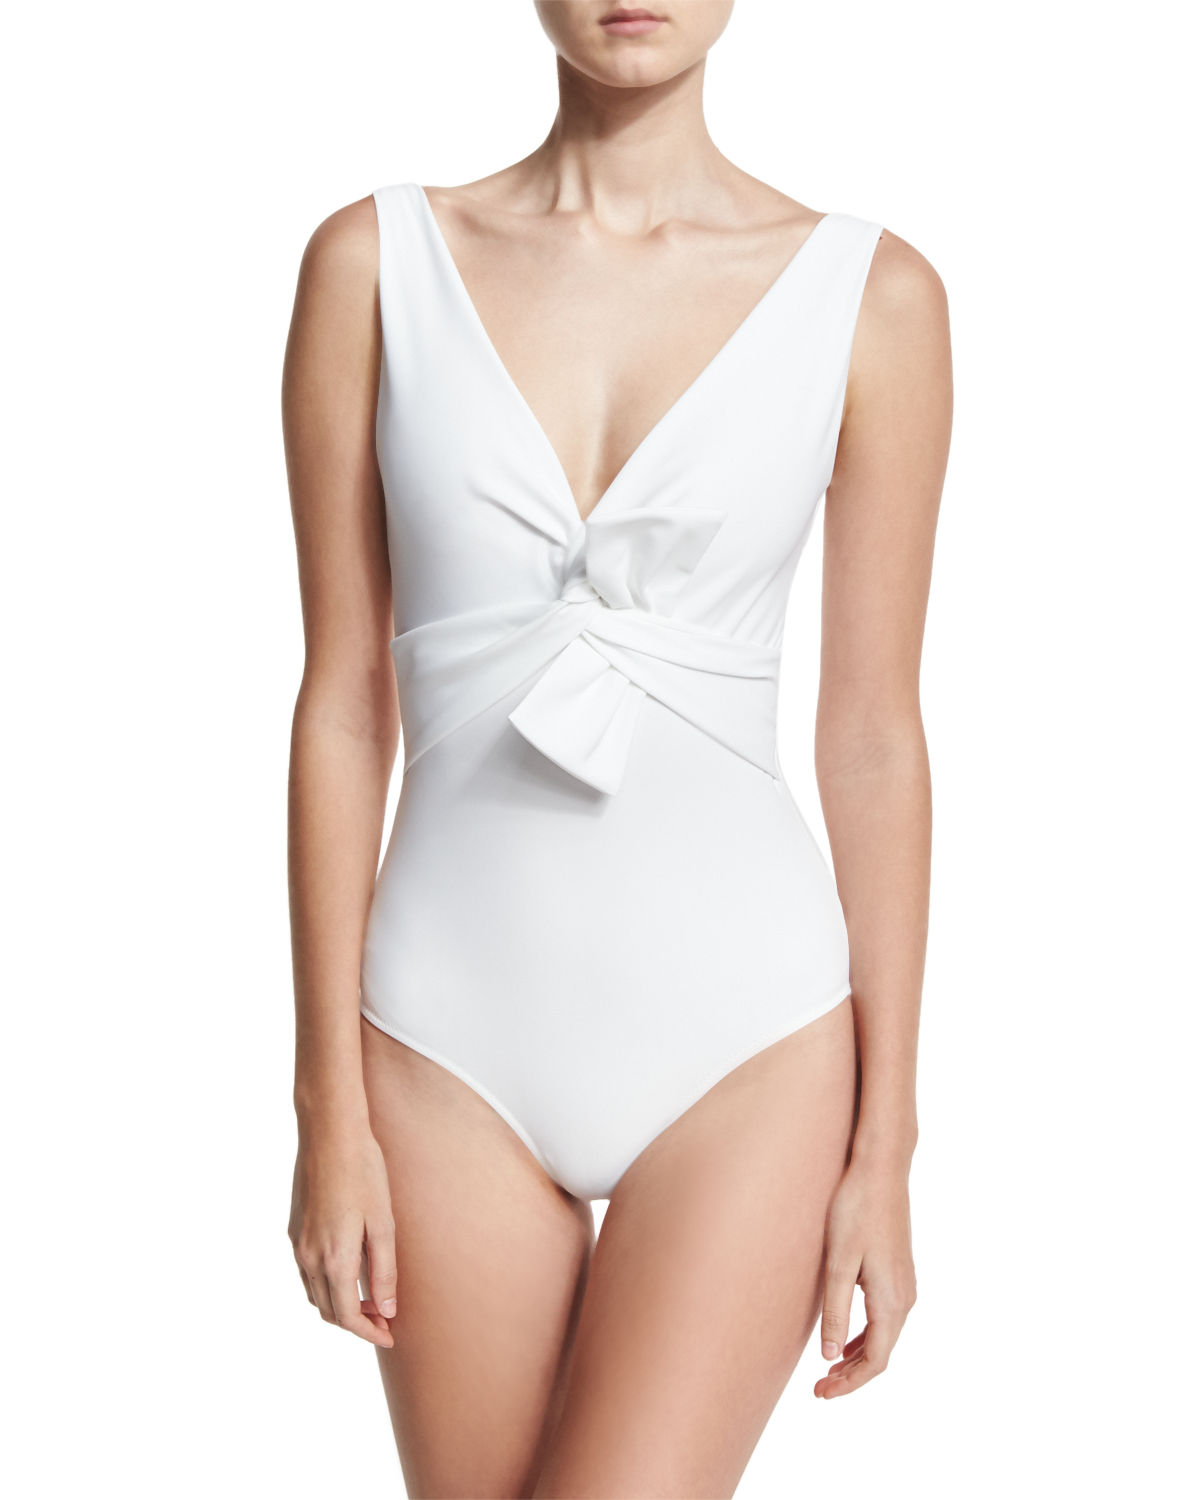 Xeni V-Neck Bow-Detail One-Piece Swimsuit